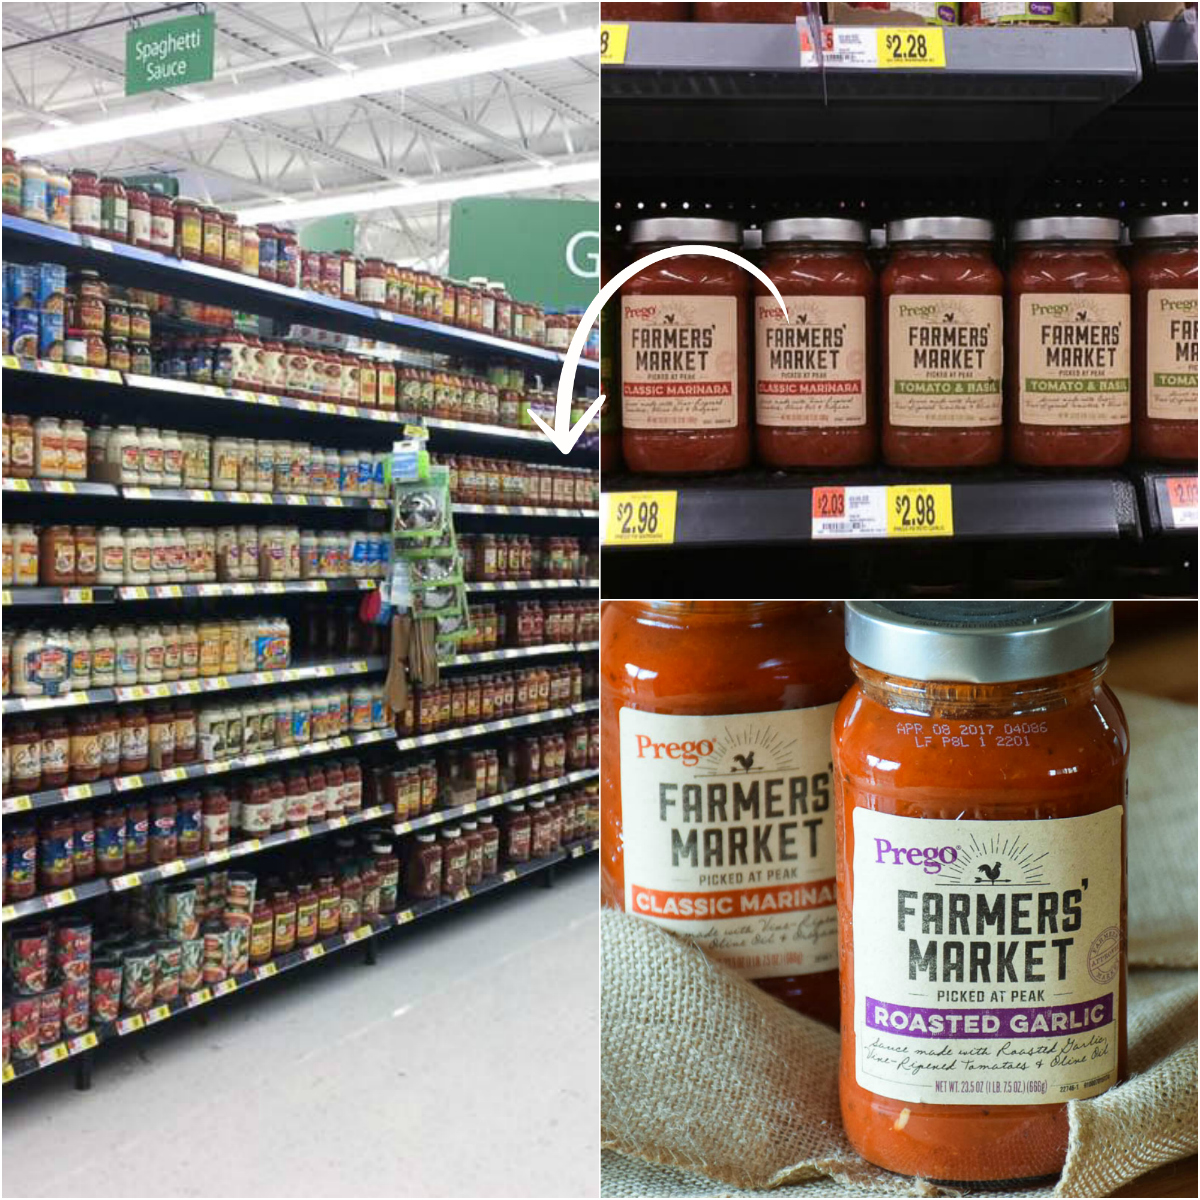 Walmart Store Collage Prego Farmers' Market® Roasted Garlic